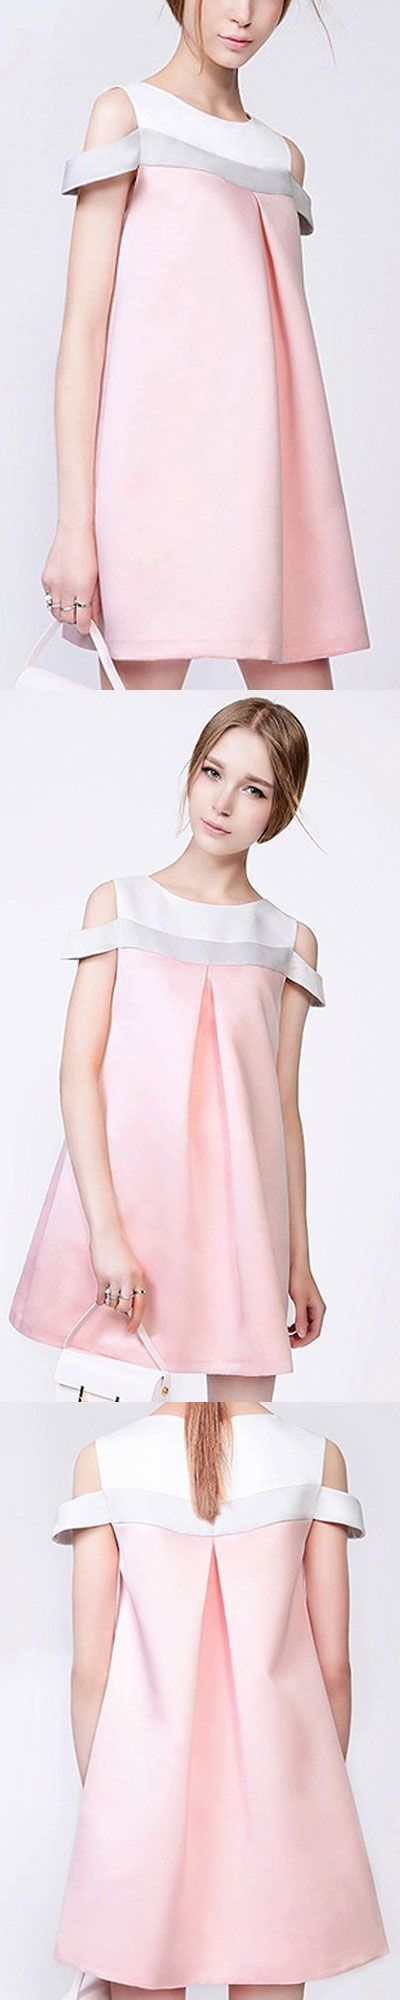 white and pinky dress - romantic outfit for summer - cut out shoulder design, looks so sweet and cute - 'pin10off' for order value $45 and above